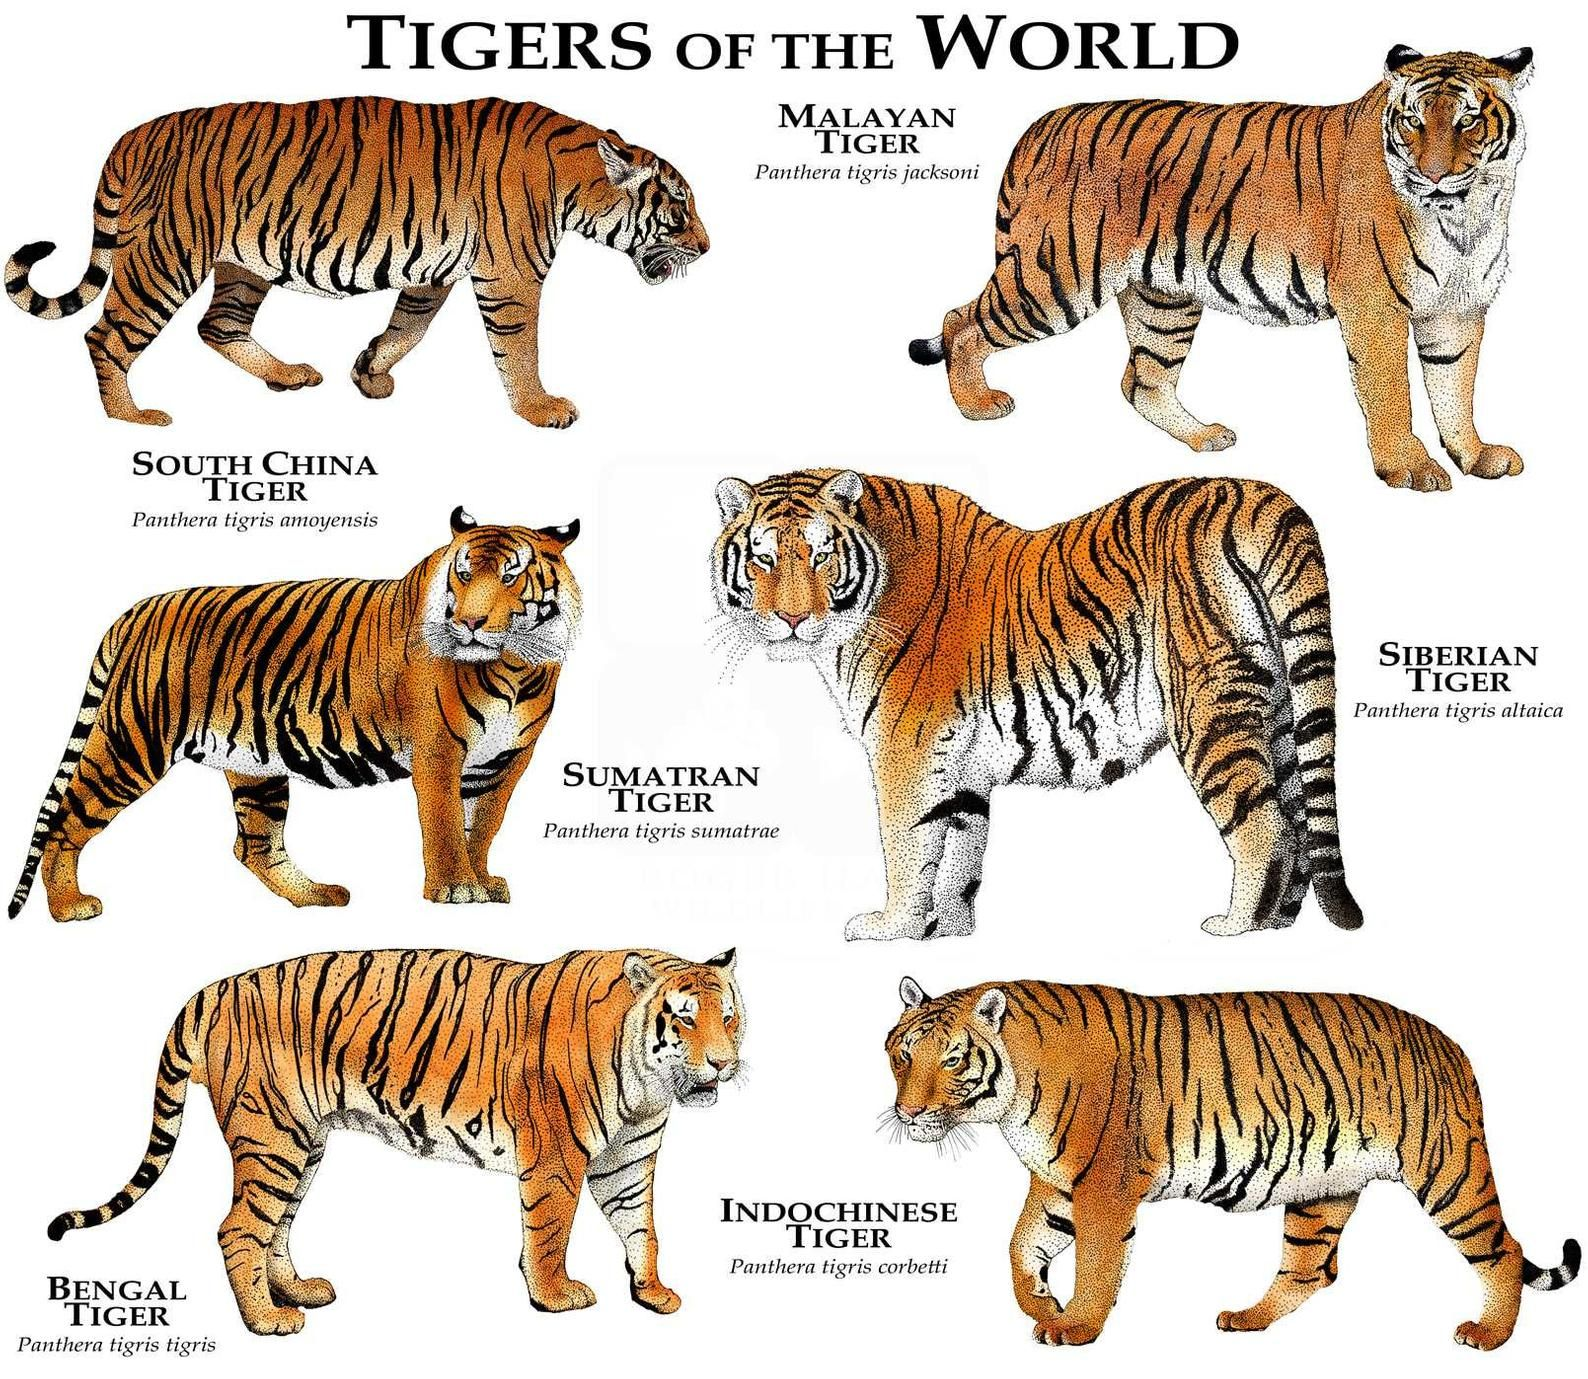 Tigers of the World Poster Print in 2020 (With images